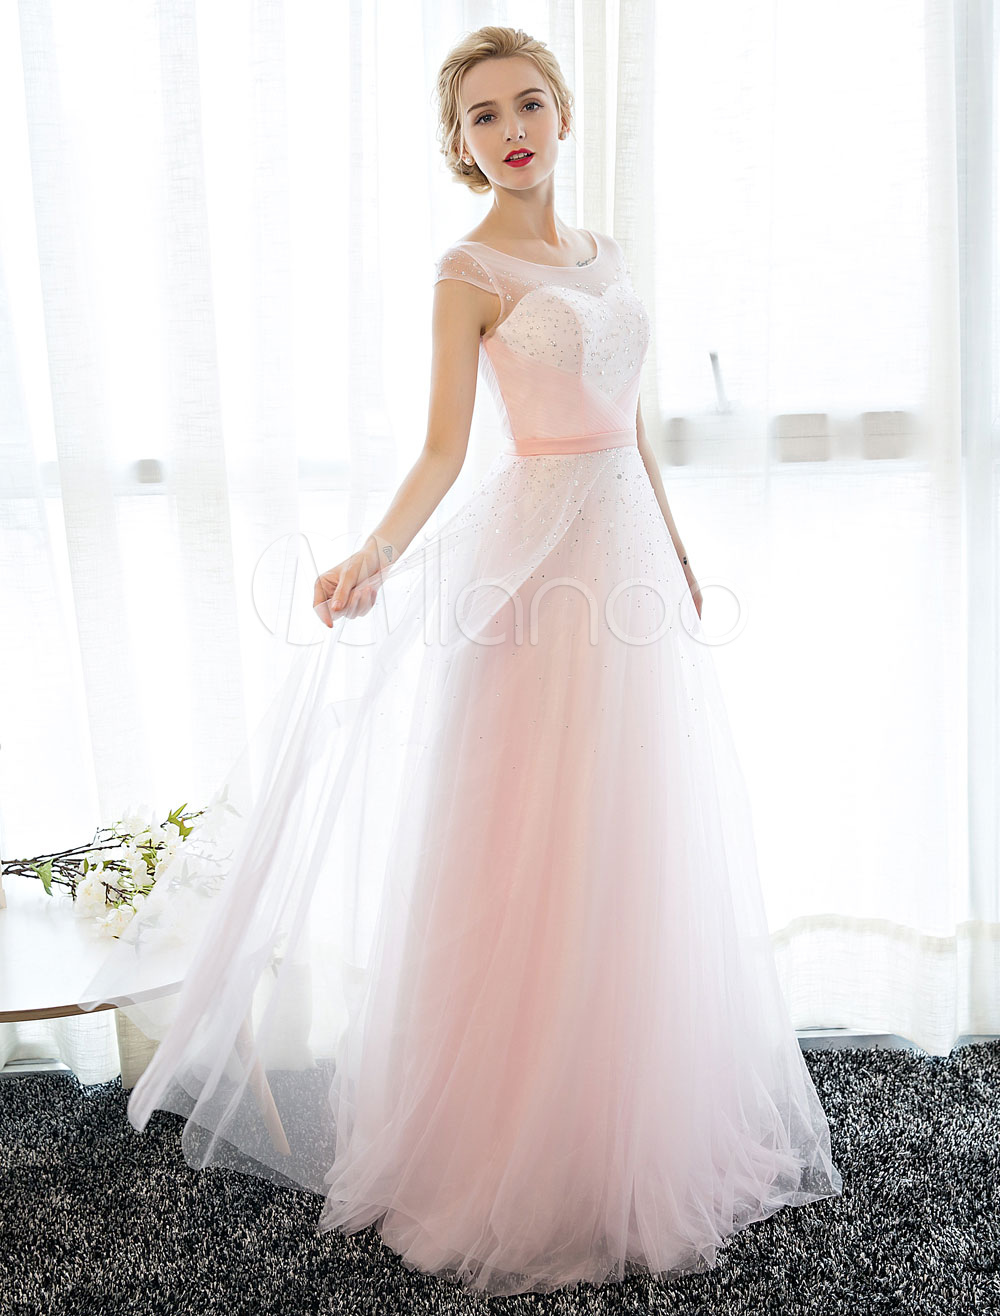 Prom Dress Long Soft Pink Tulle Party Dress Beaded Illusion Sweetheart Neckline Floor Length Prom Dresses